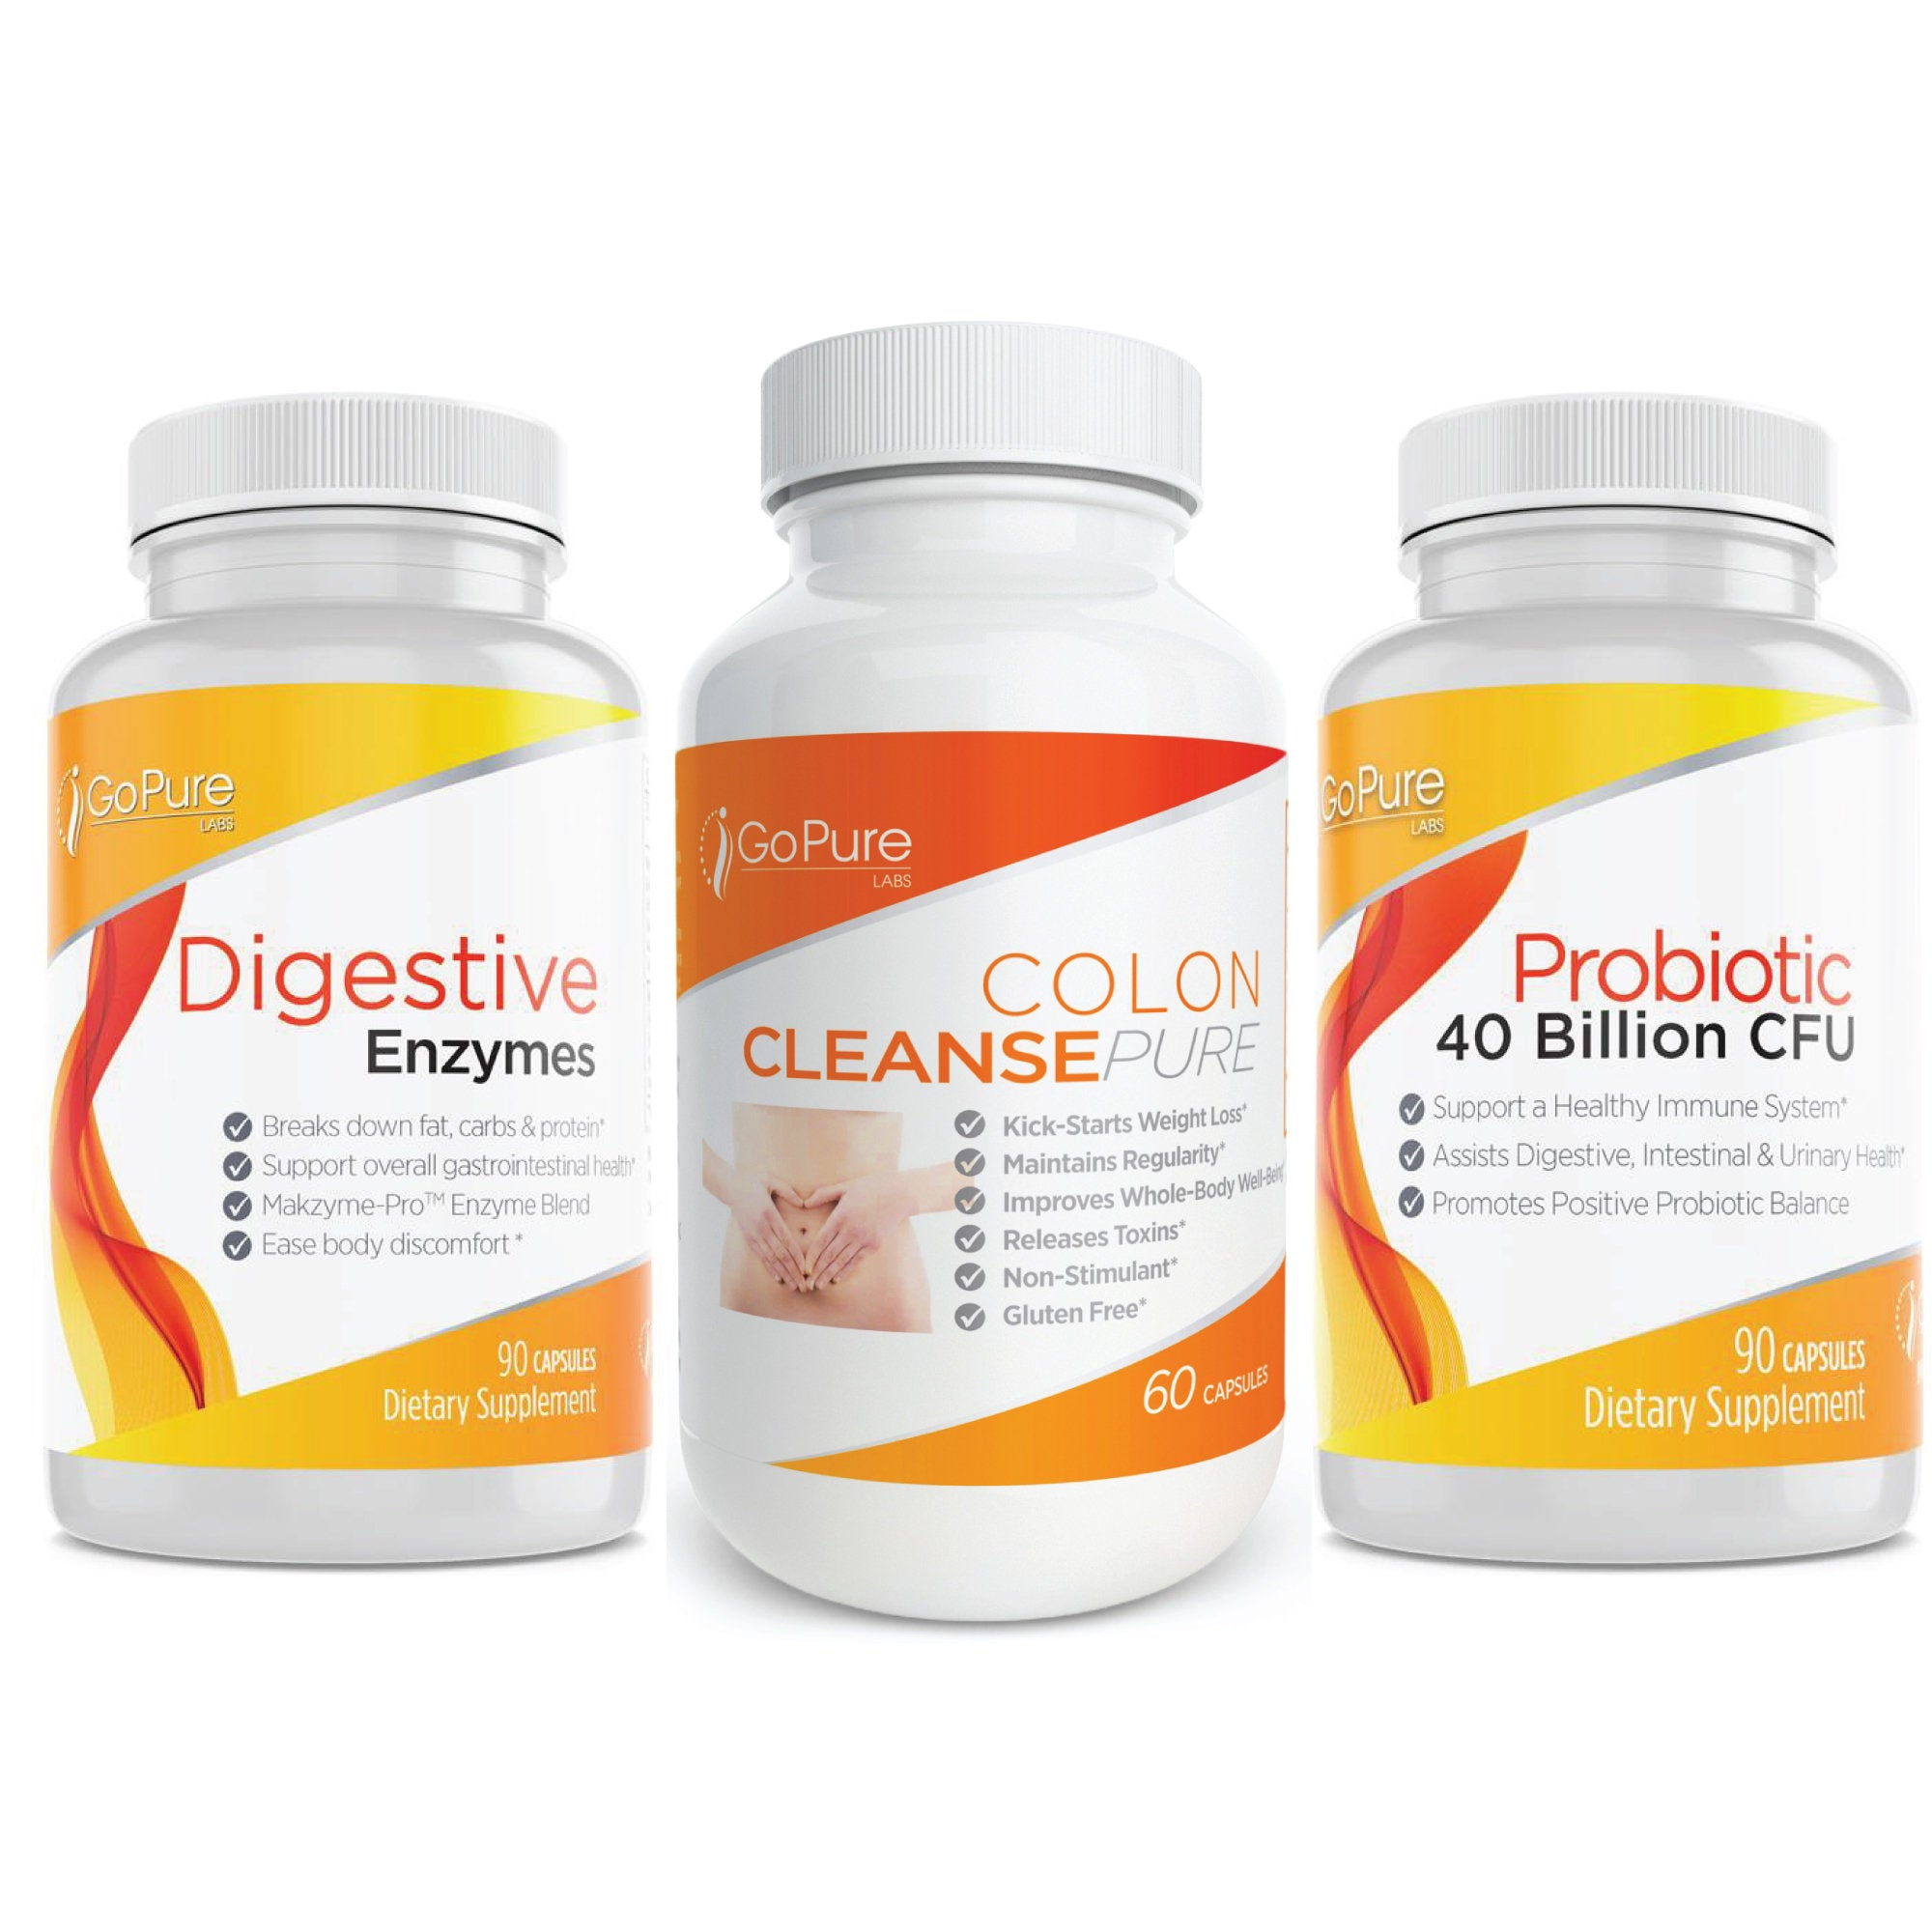 The Ultimate Good Belly Cleanse - Probiotic, Digestive Enzyme, Colon Cleanse